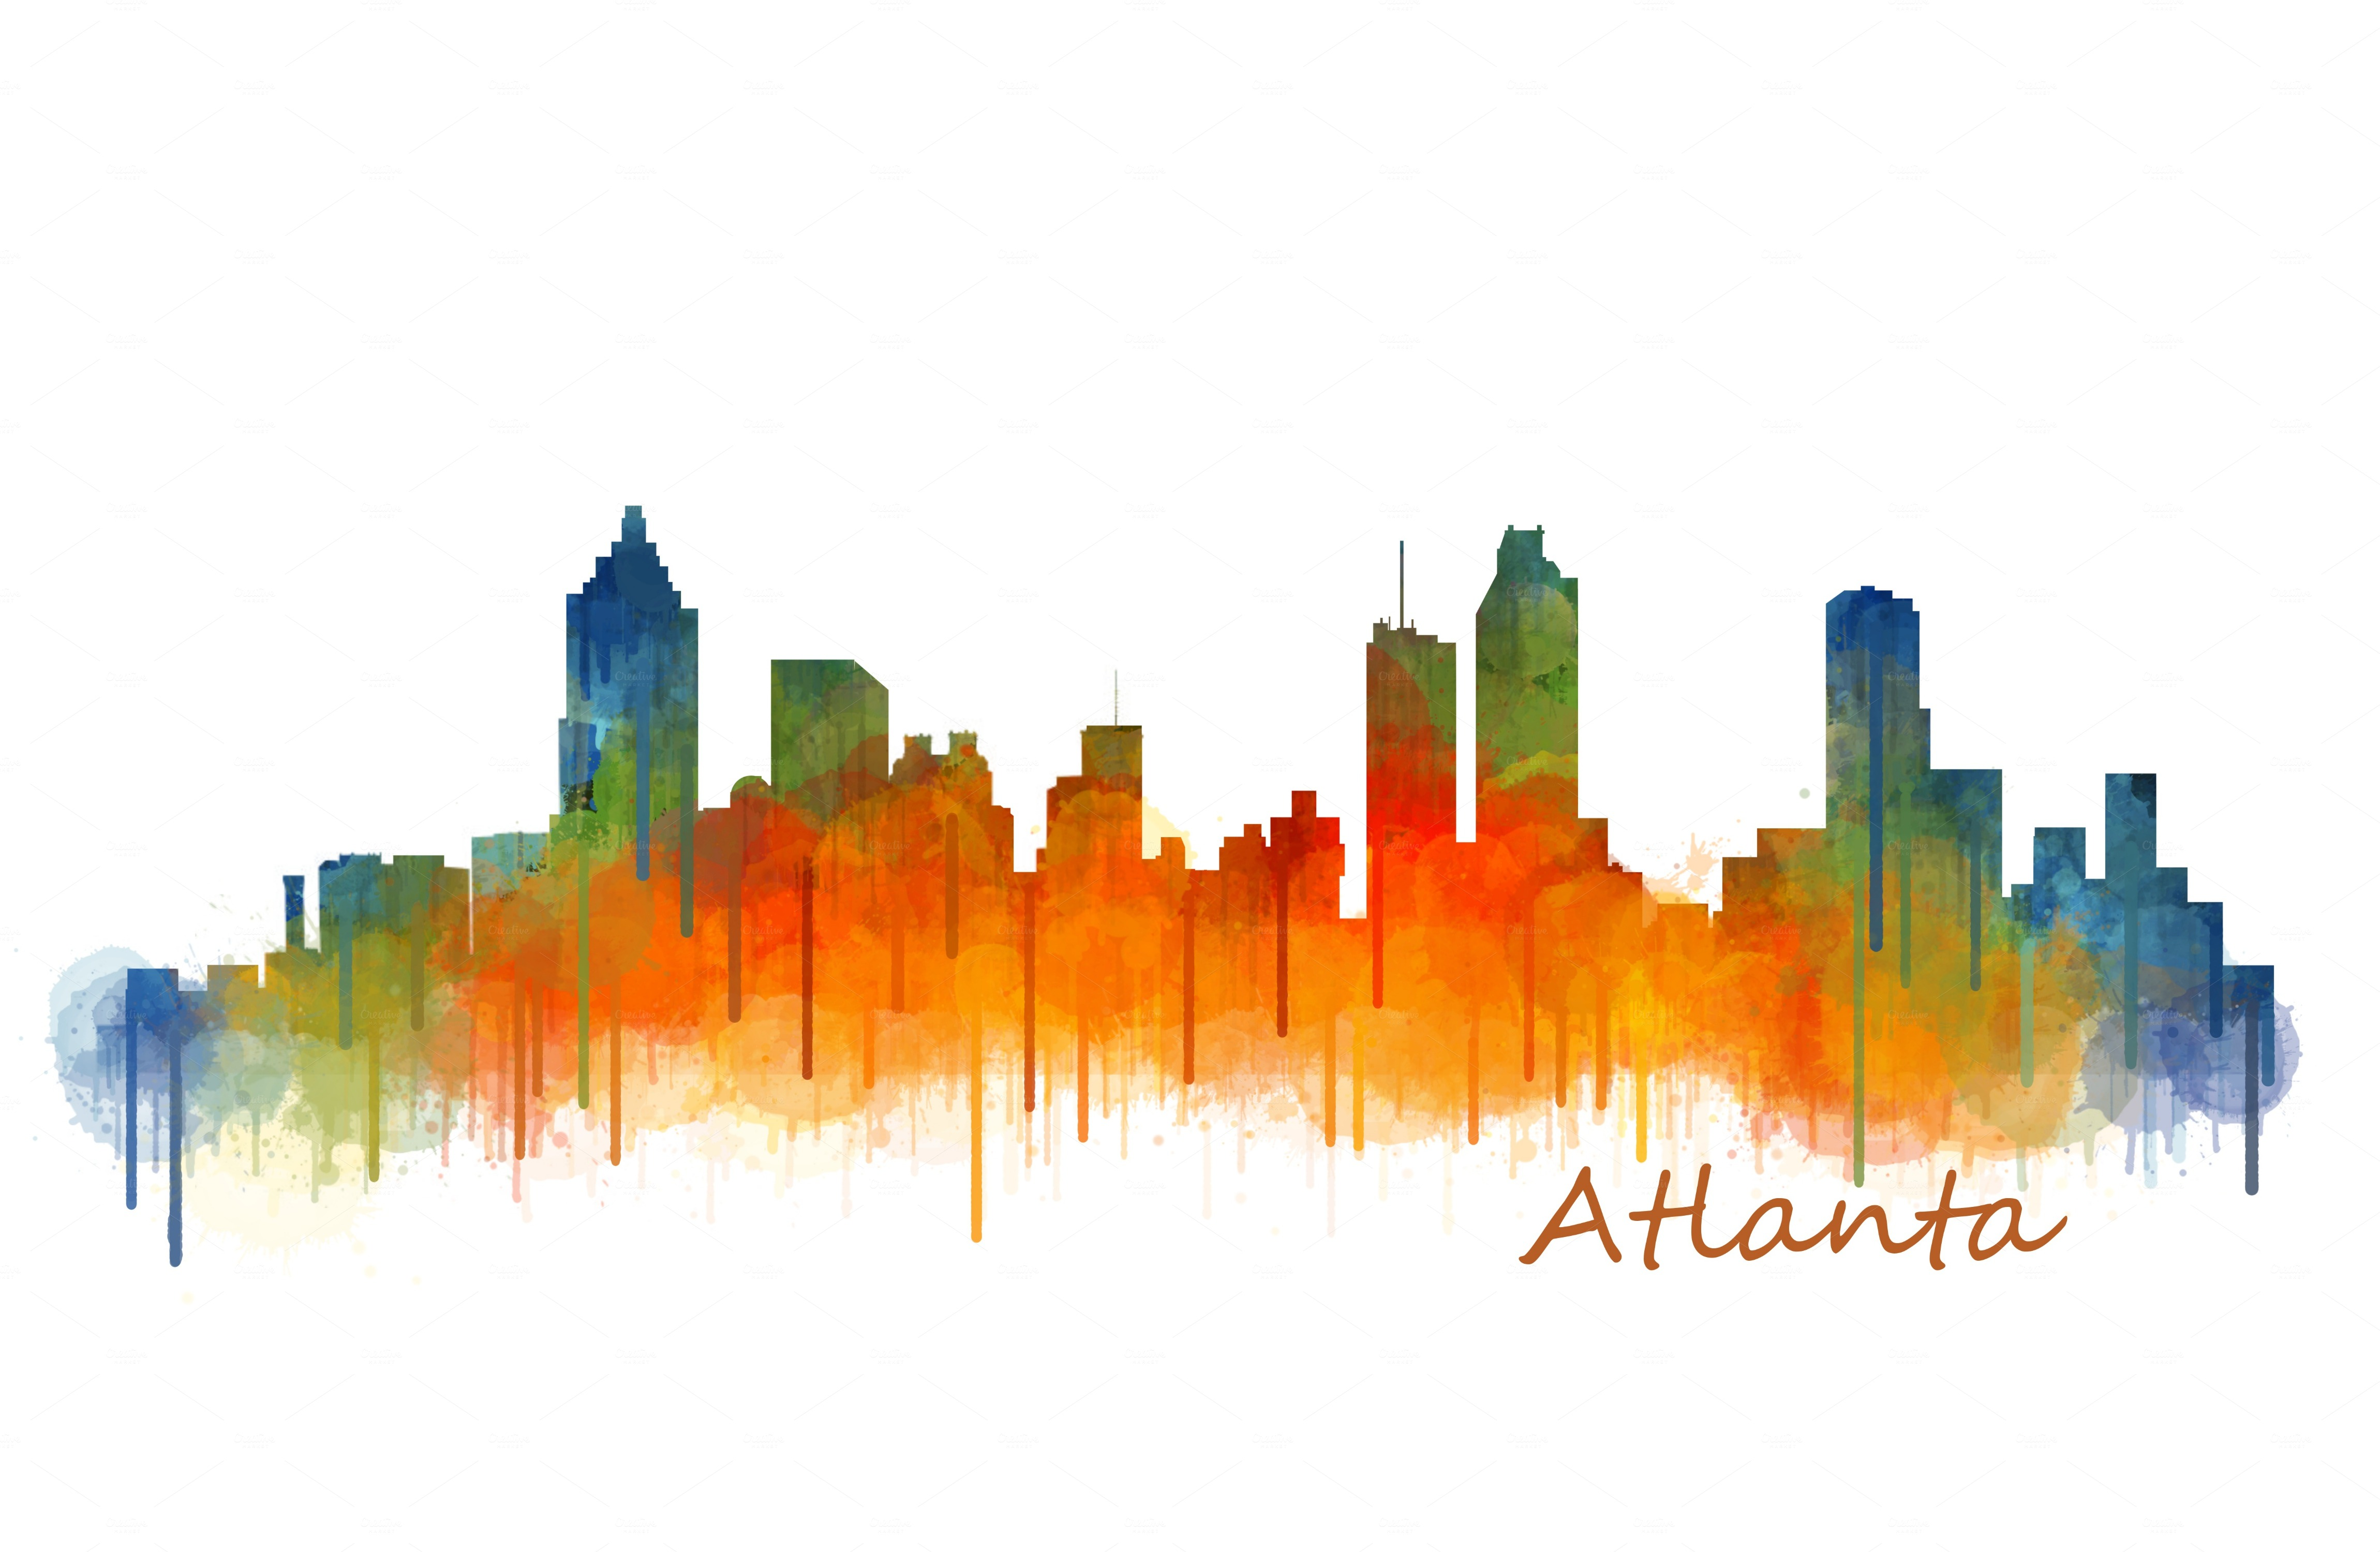 Atlanta City Skyline Hq v2 ~ Illustrations on Creative Market